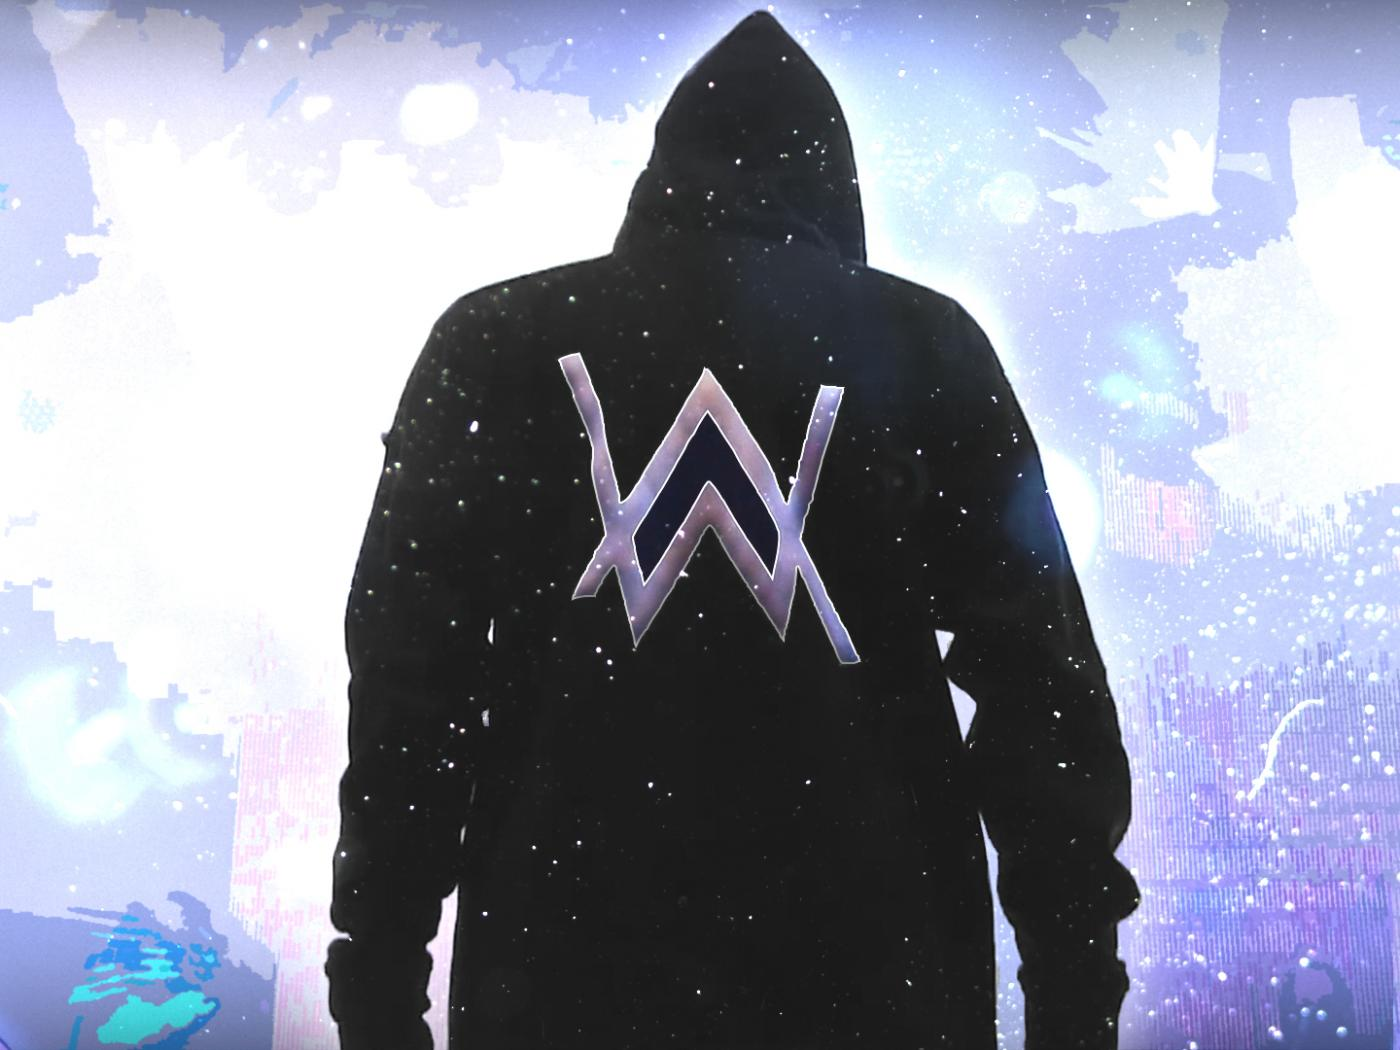 Alan Walker Hoodie Wallpaper in Full HD HD Wallpapers 1400x1050